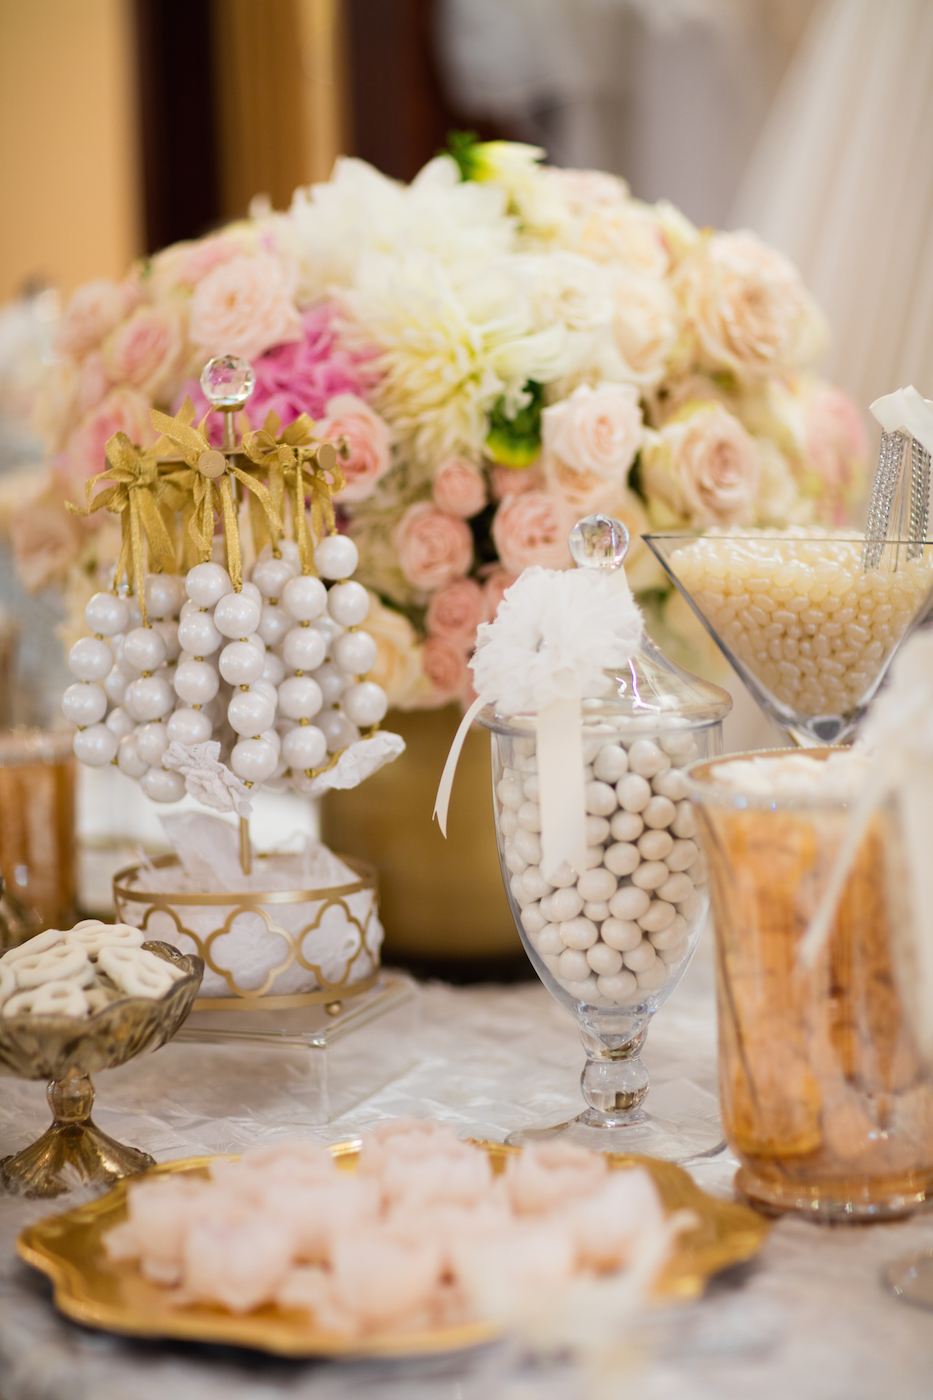 panache_bridal_inside_weddings_candybar_couture6